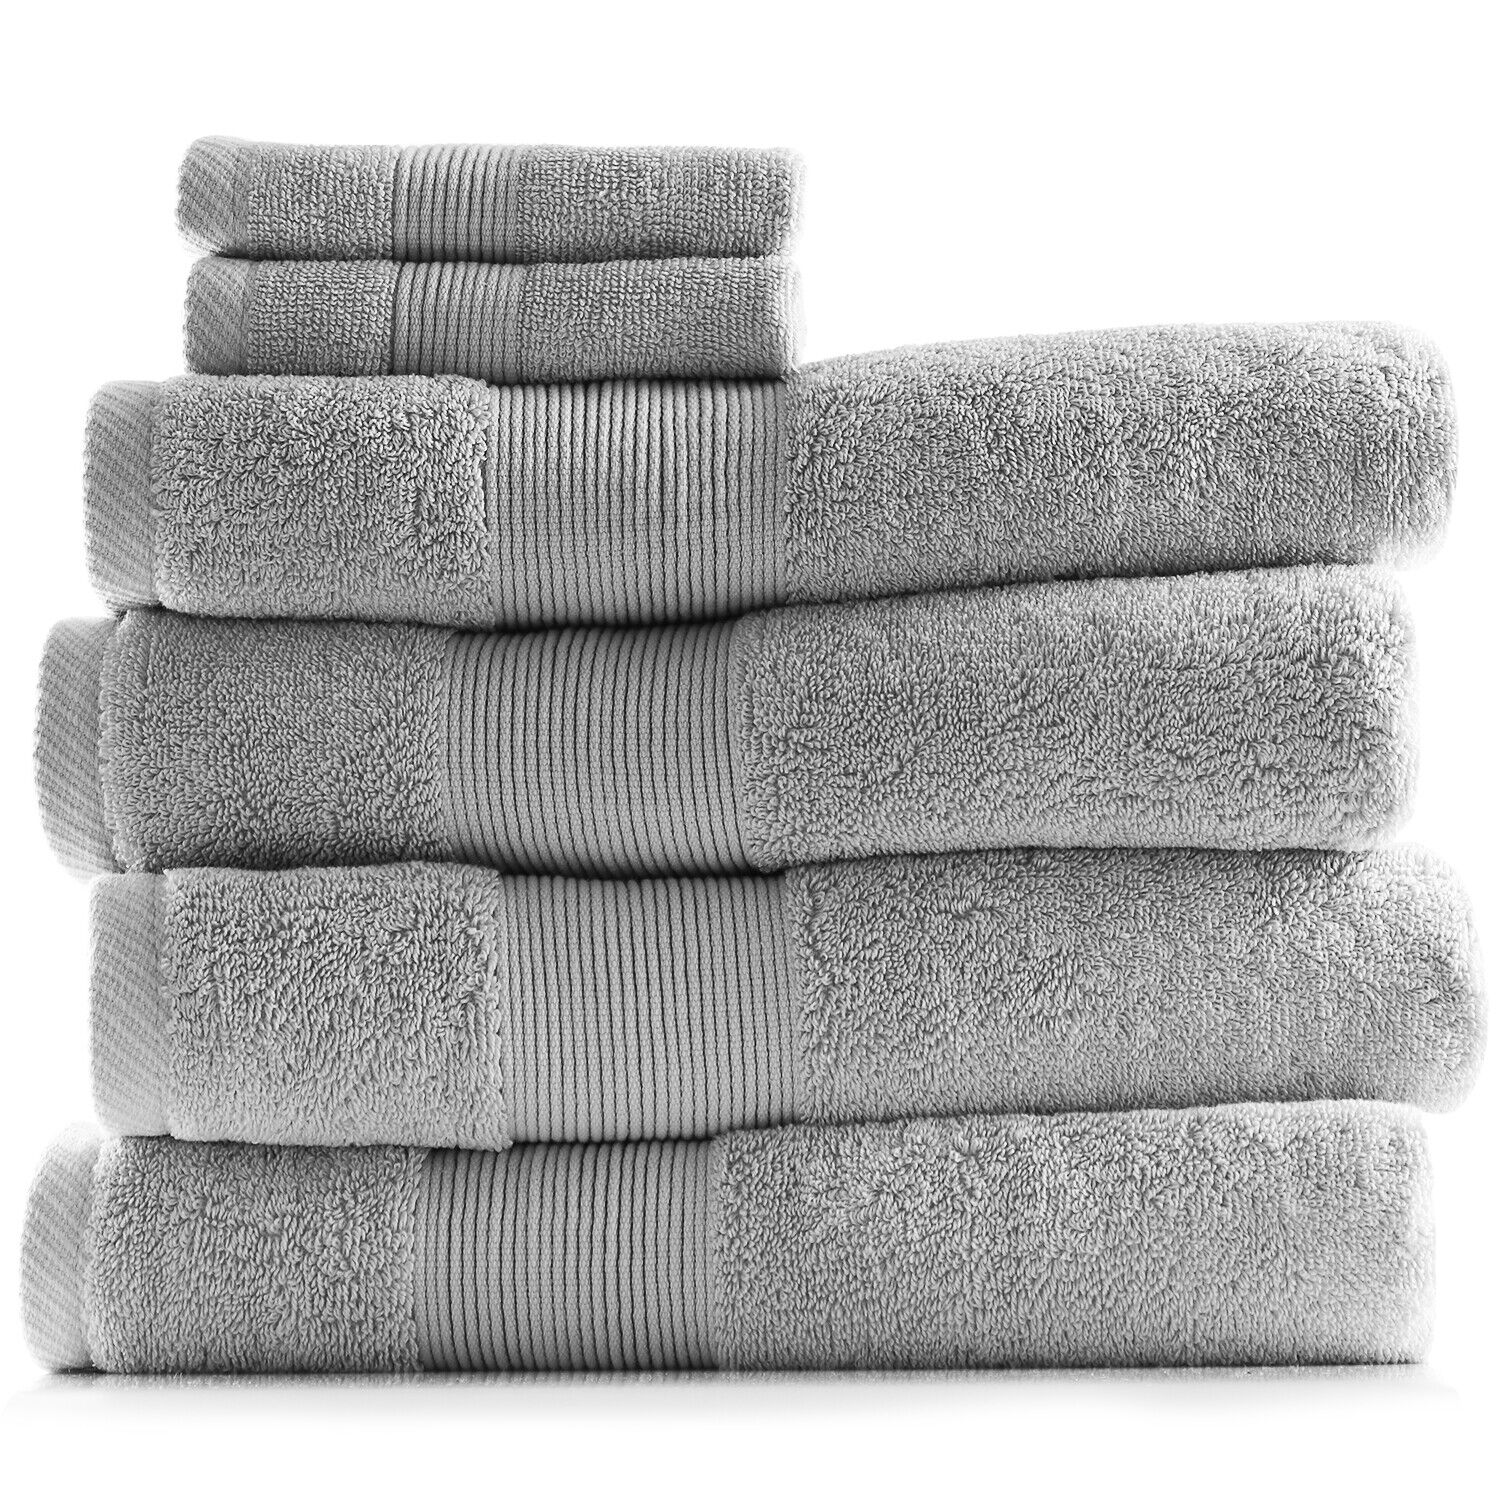 35 x 66 Bath Towels - White 100/% Combed Cotton 4 Pack of Towels for Home Hotel and Spa Pack of 4 Bath Extra Large Towel Set - Premium Bath Towels Super Plush 550 GSM